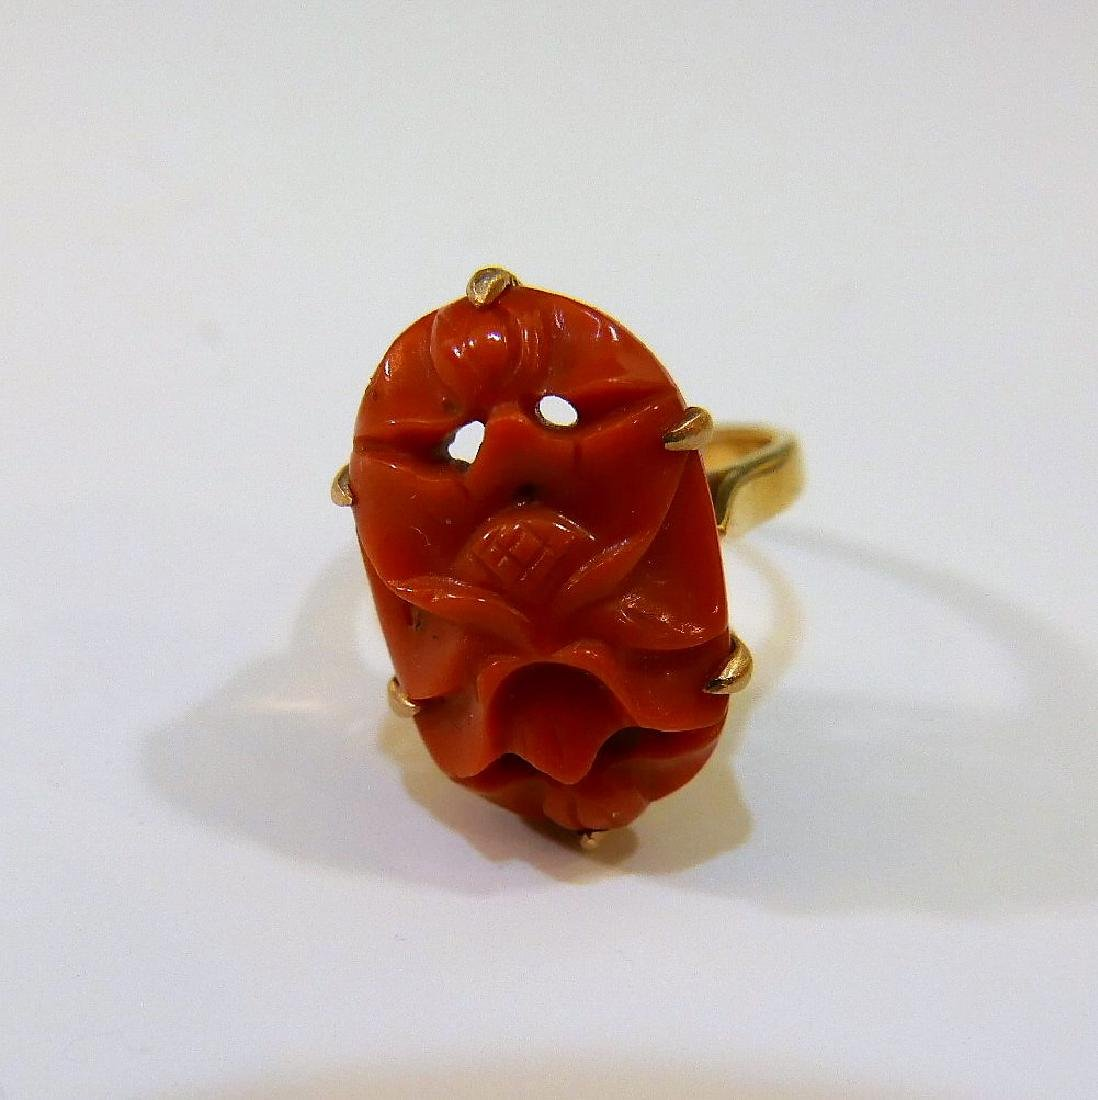 14K GOLD RED CORAL RING 5 GRAMS